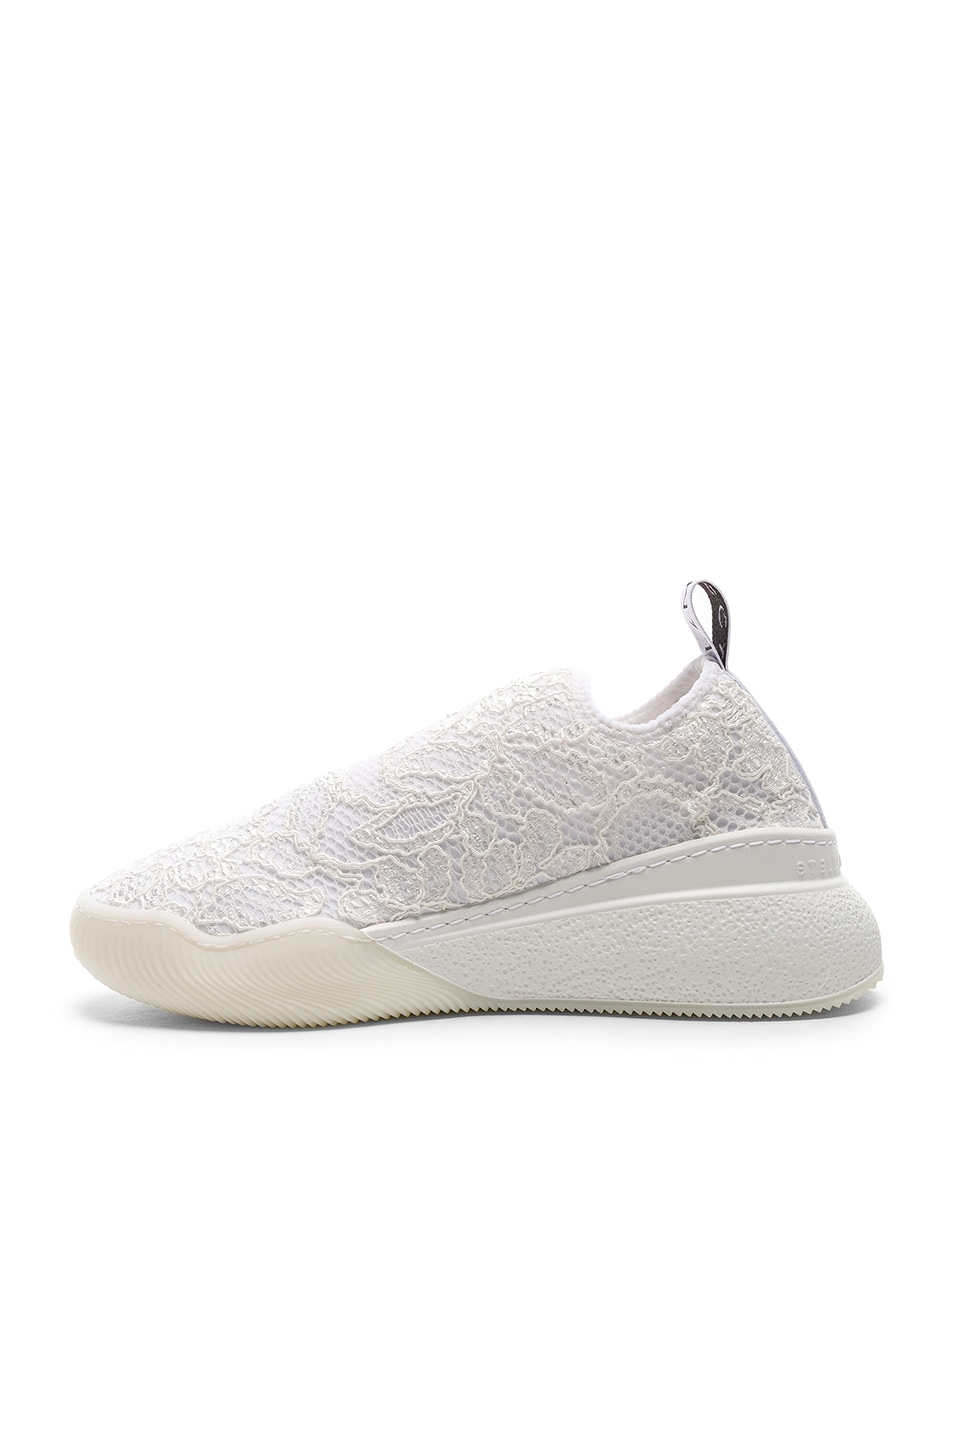 Image 5 of Stella McCartney Loop Sock Sneakers in White & Grey